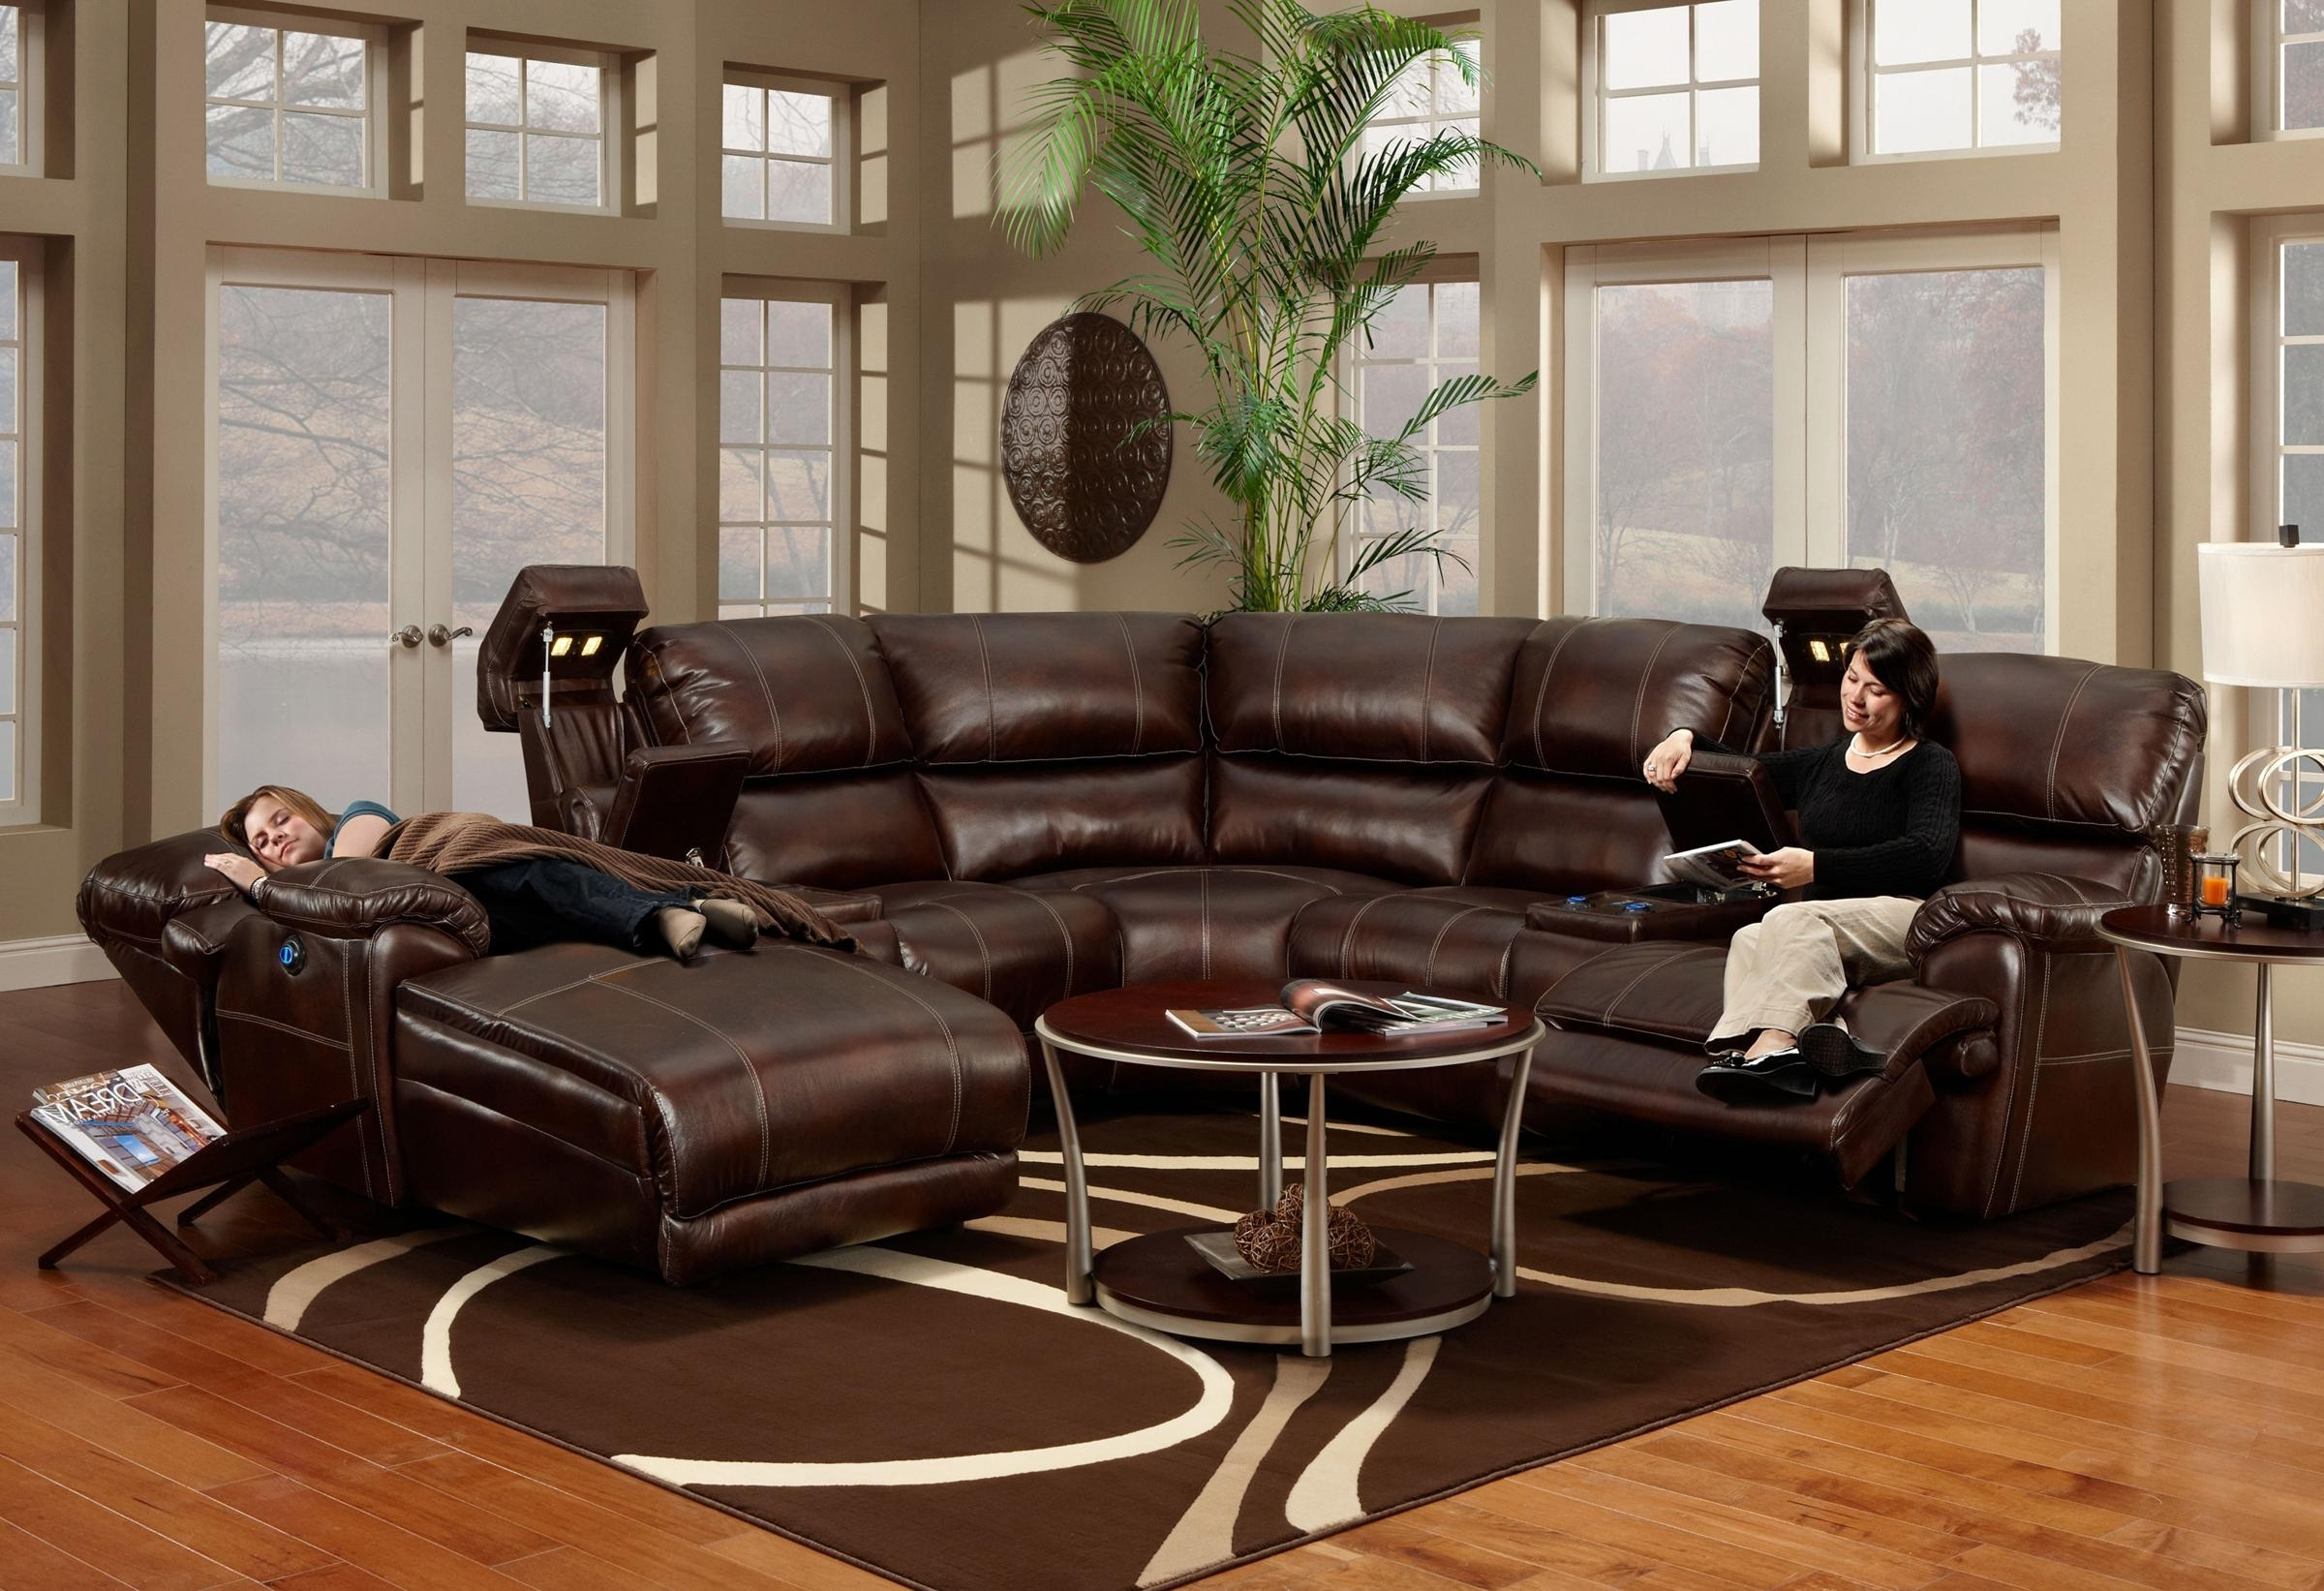 Trendy Franklin 572 Reclining Sectional Sofa With Chaise – Ahfa – Sofa Pertaining To St Cloud Mn Sectional Sofas (View 14 of 15)